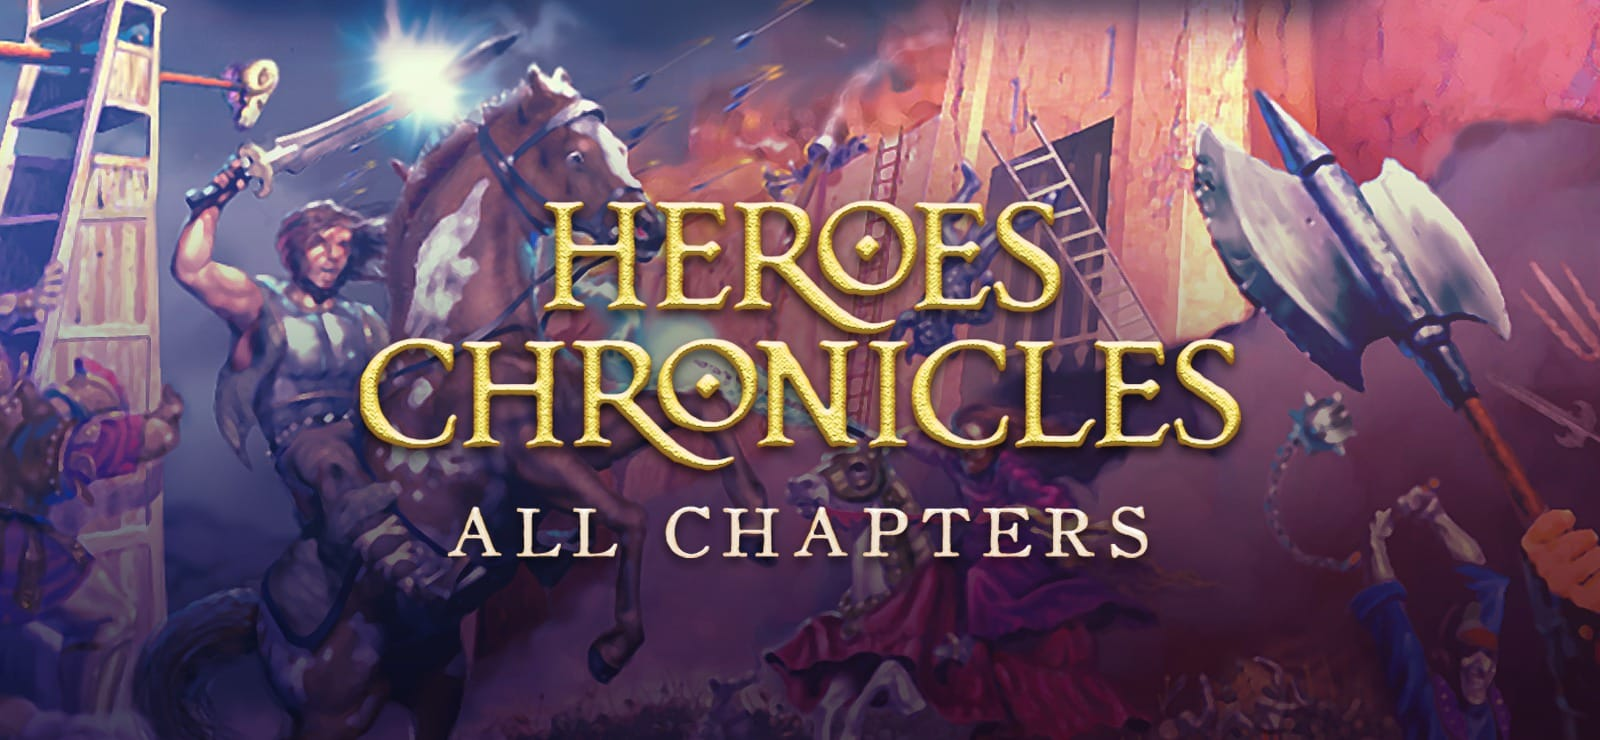 Heroes Chronicles: All Chapters varies-with-device